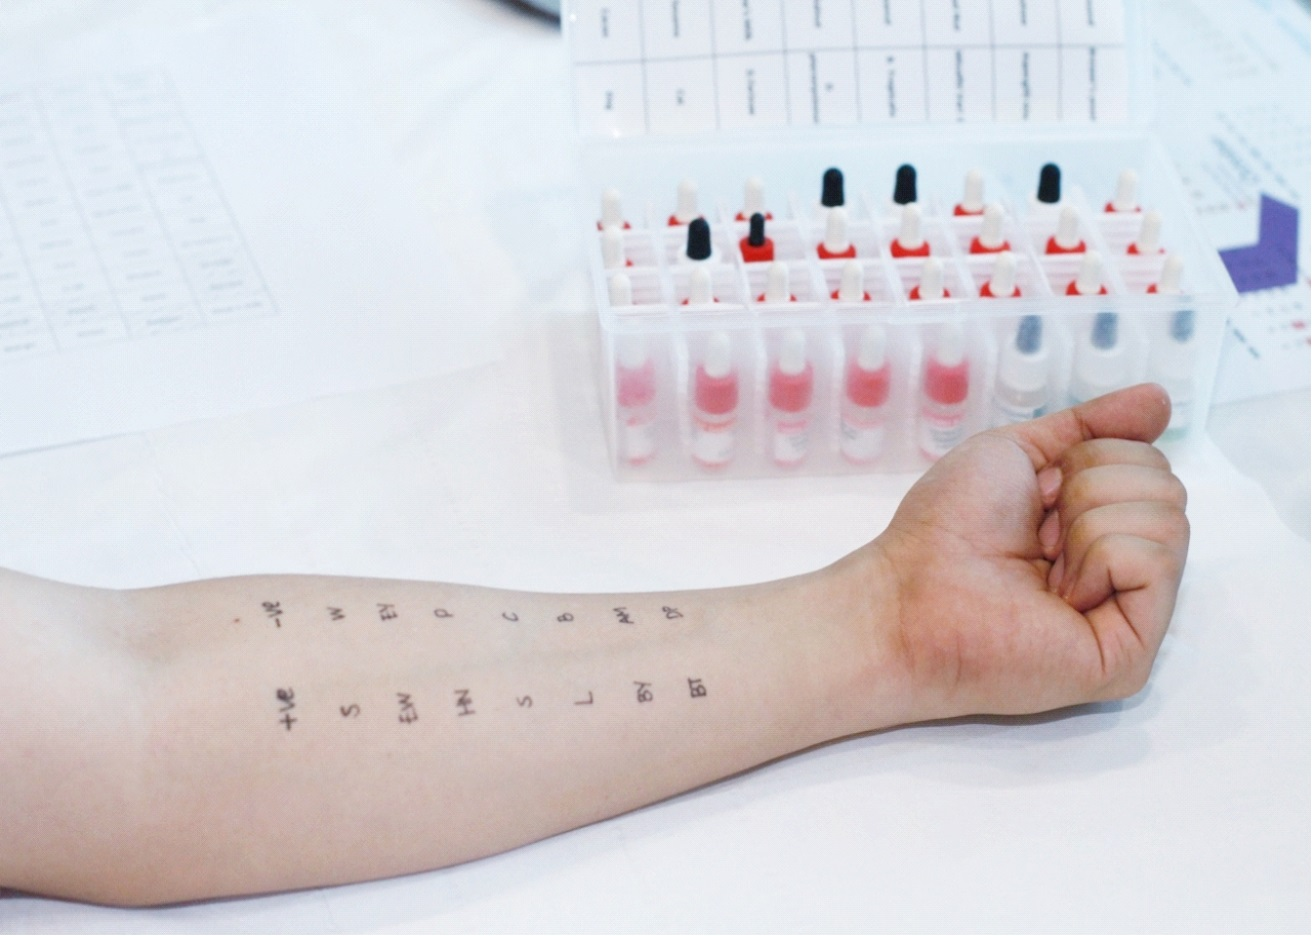 Picture of patient's arm resting beside bottles of allergen waiting for skin prick test